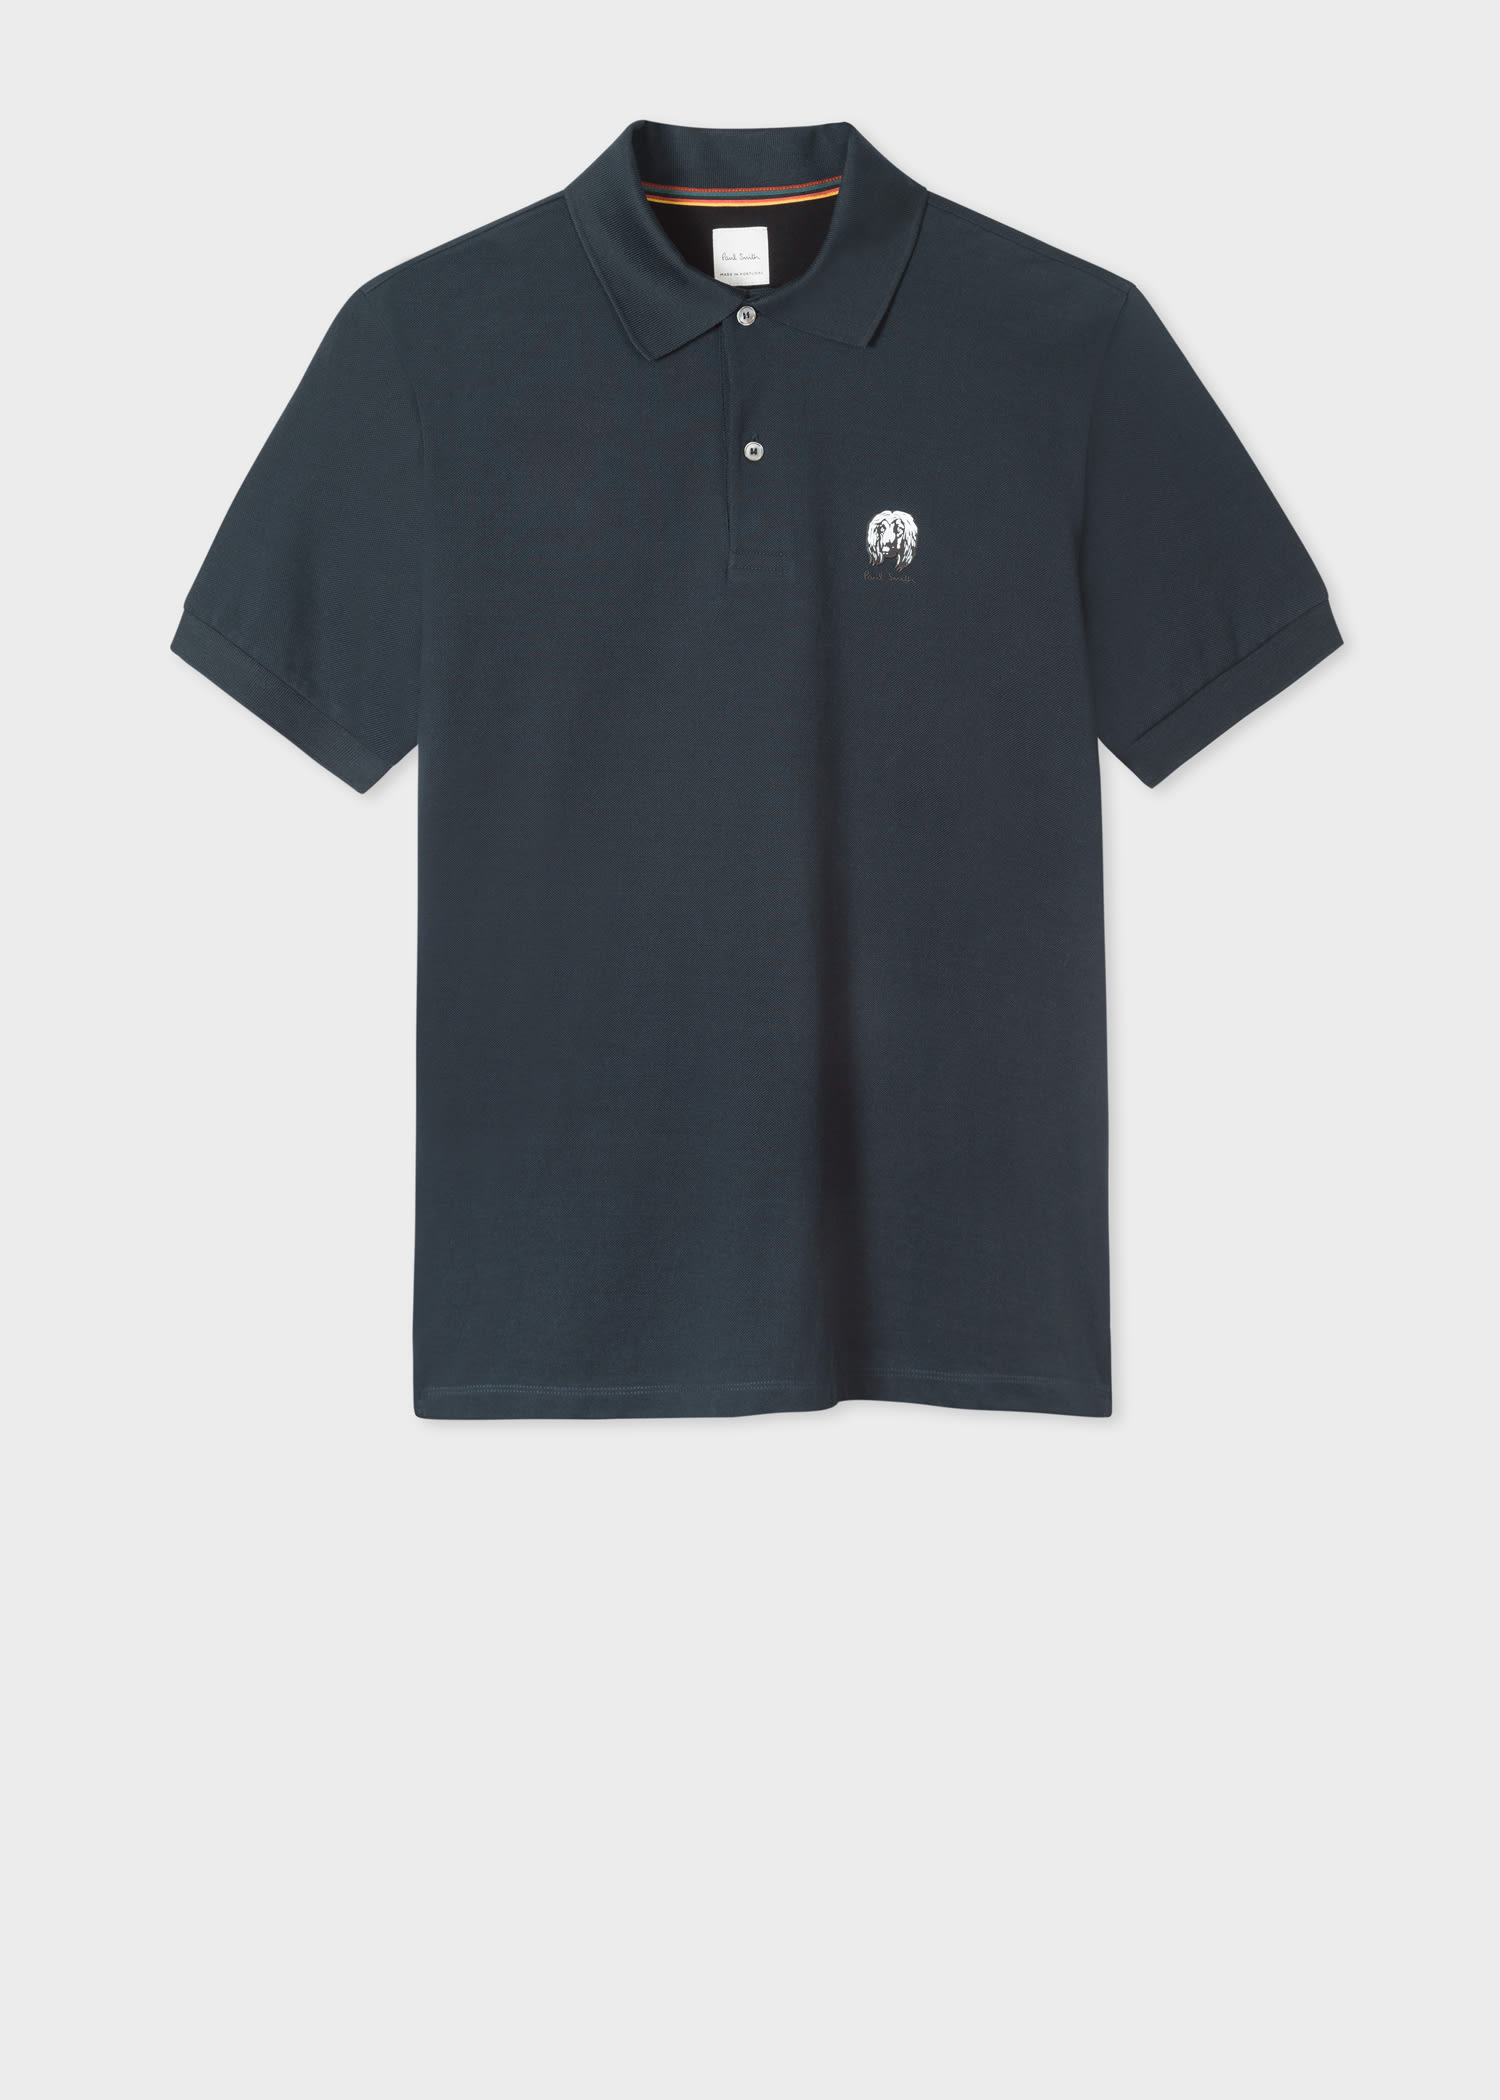 Men's Designer Polo Shirts Online Sale & Clearance - Paul Smith